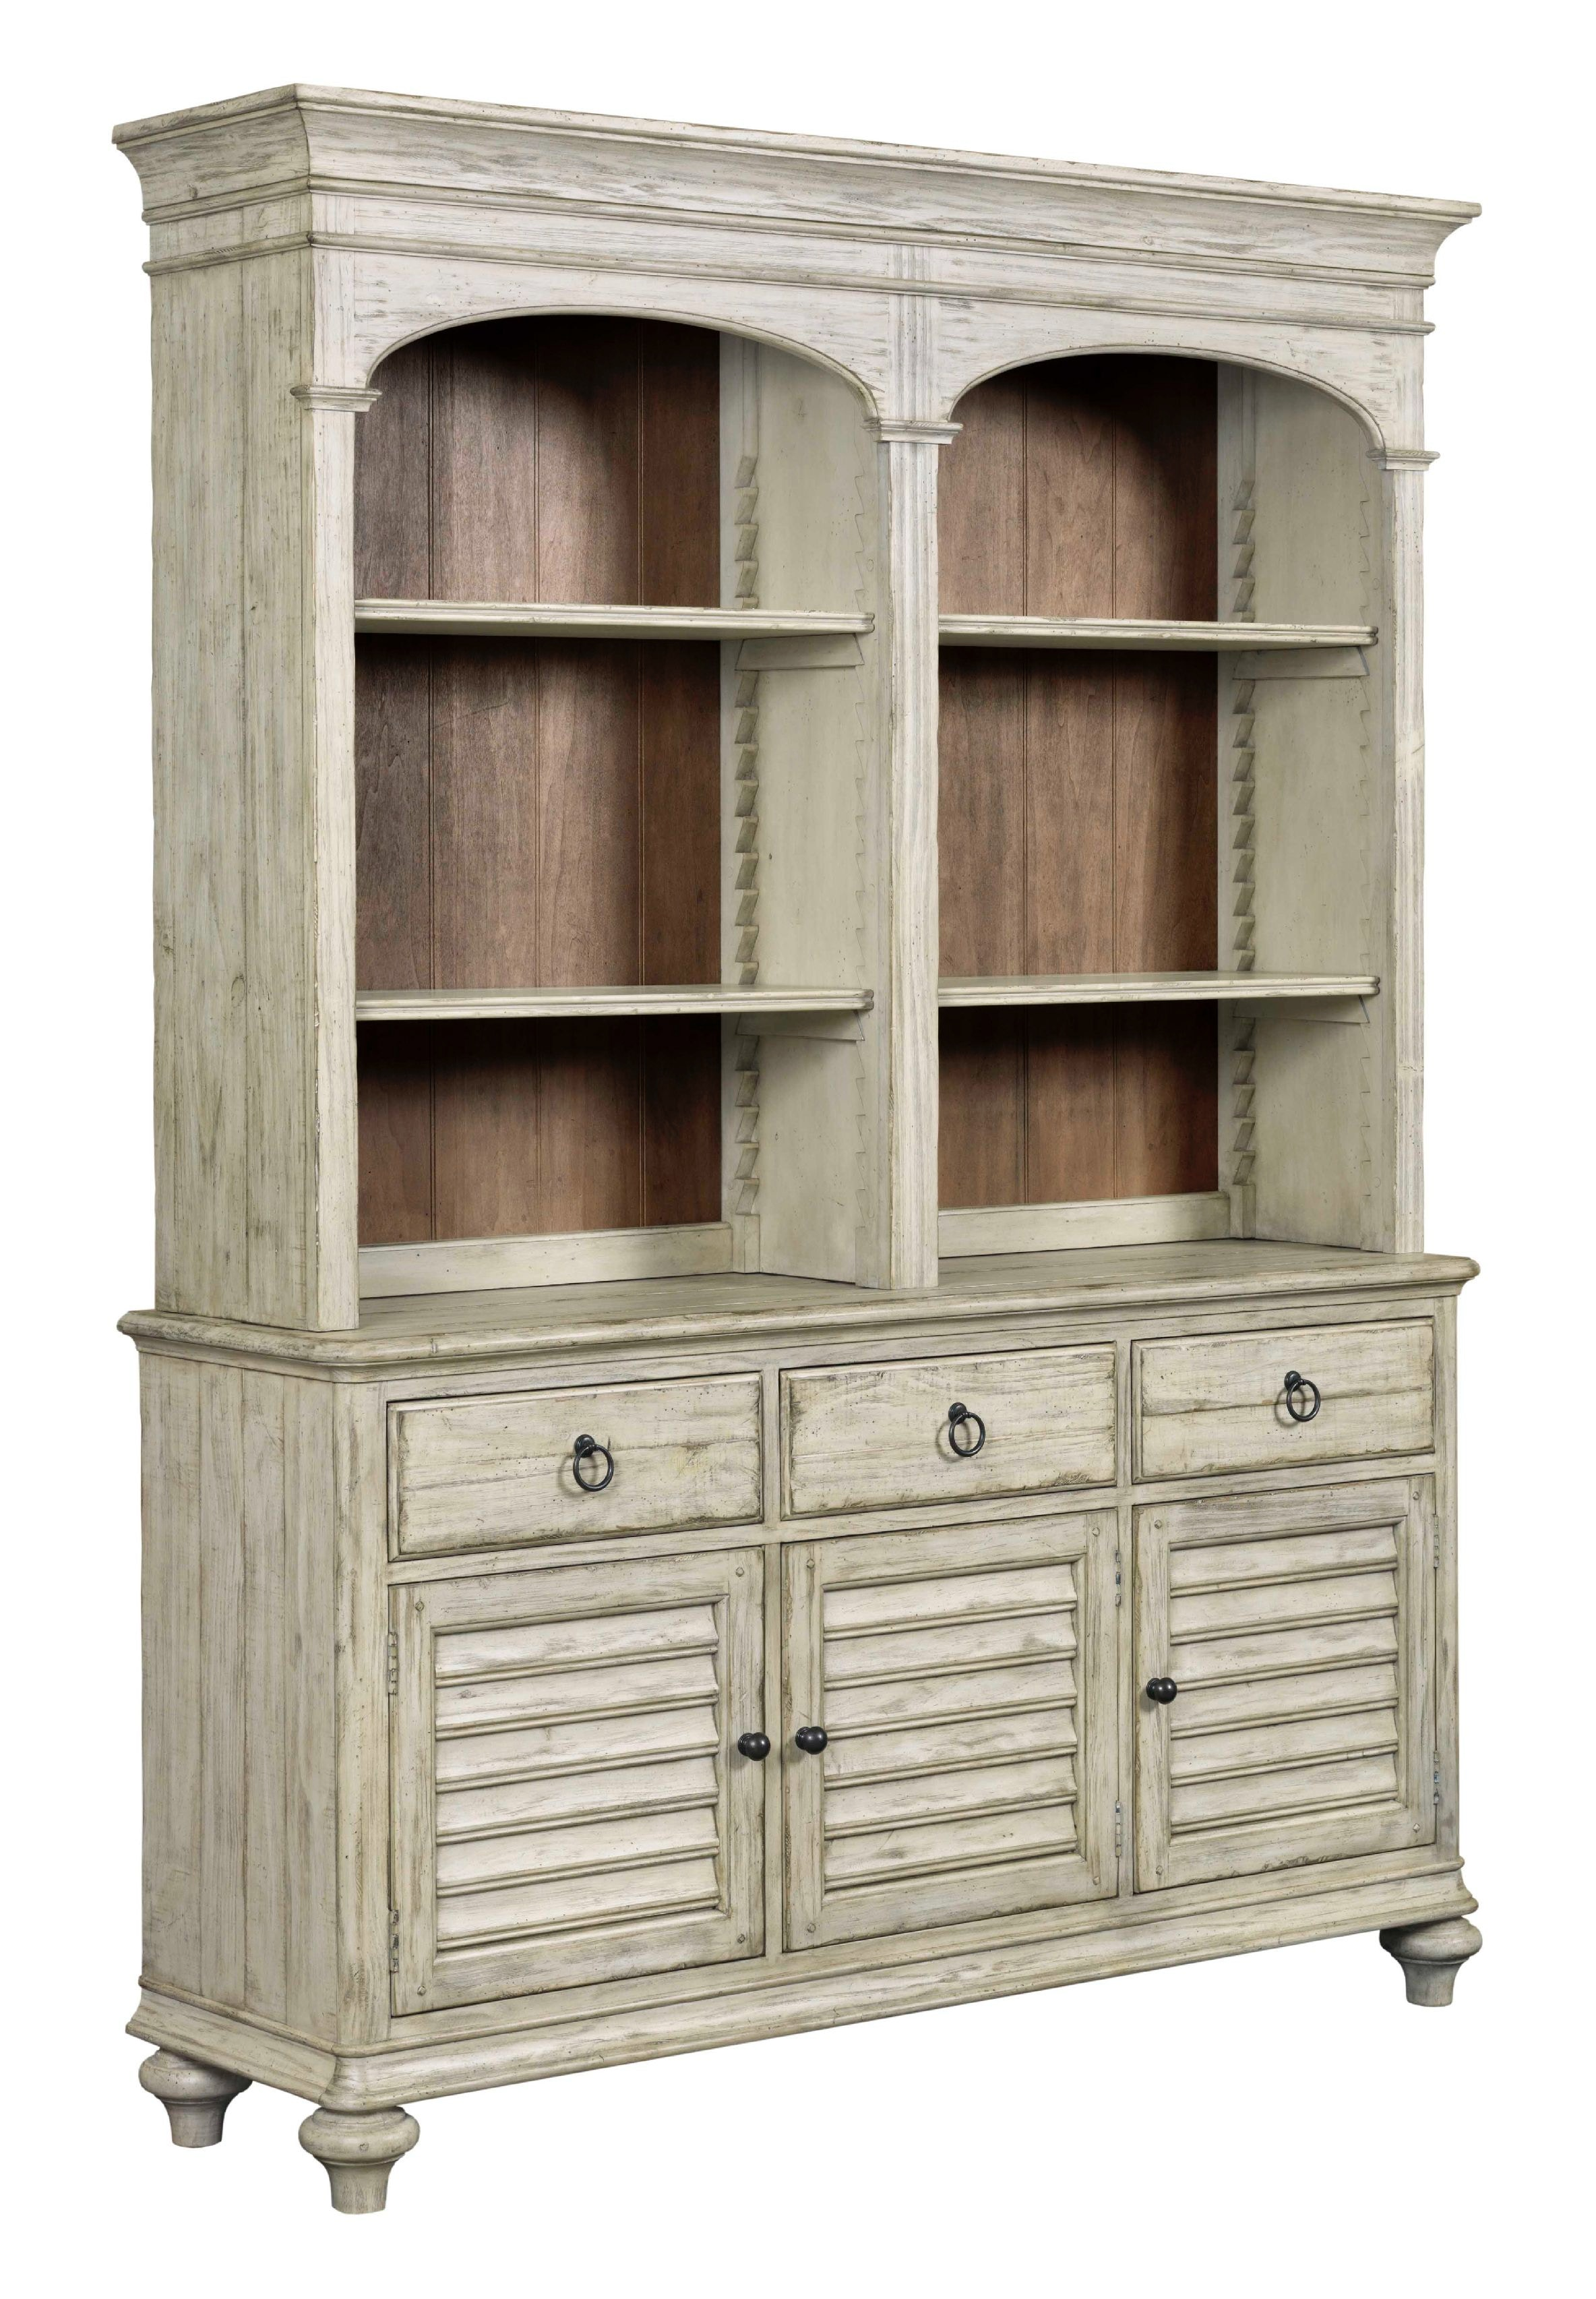 Weatherford Hastings Open Hutch And Buffet   CORNSILK KT:18689